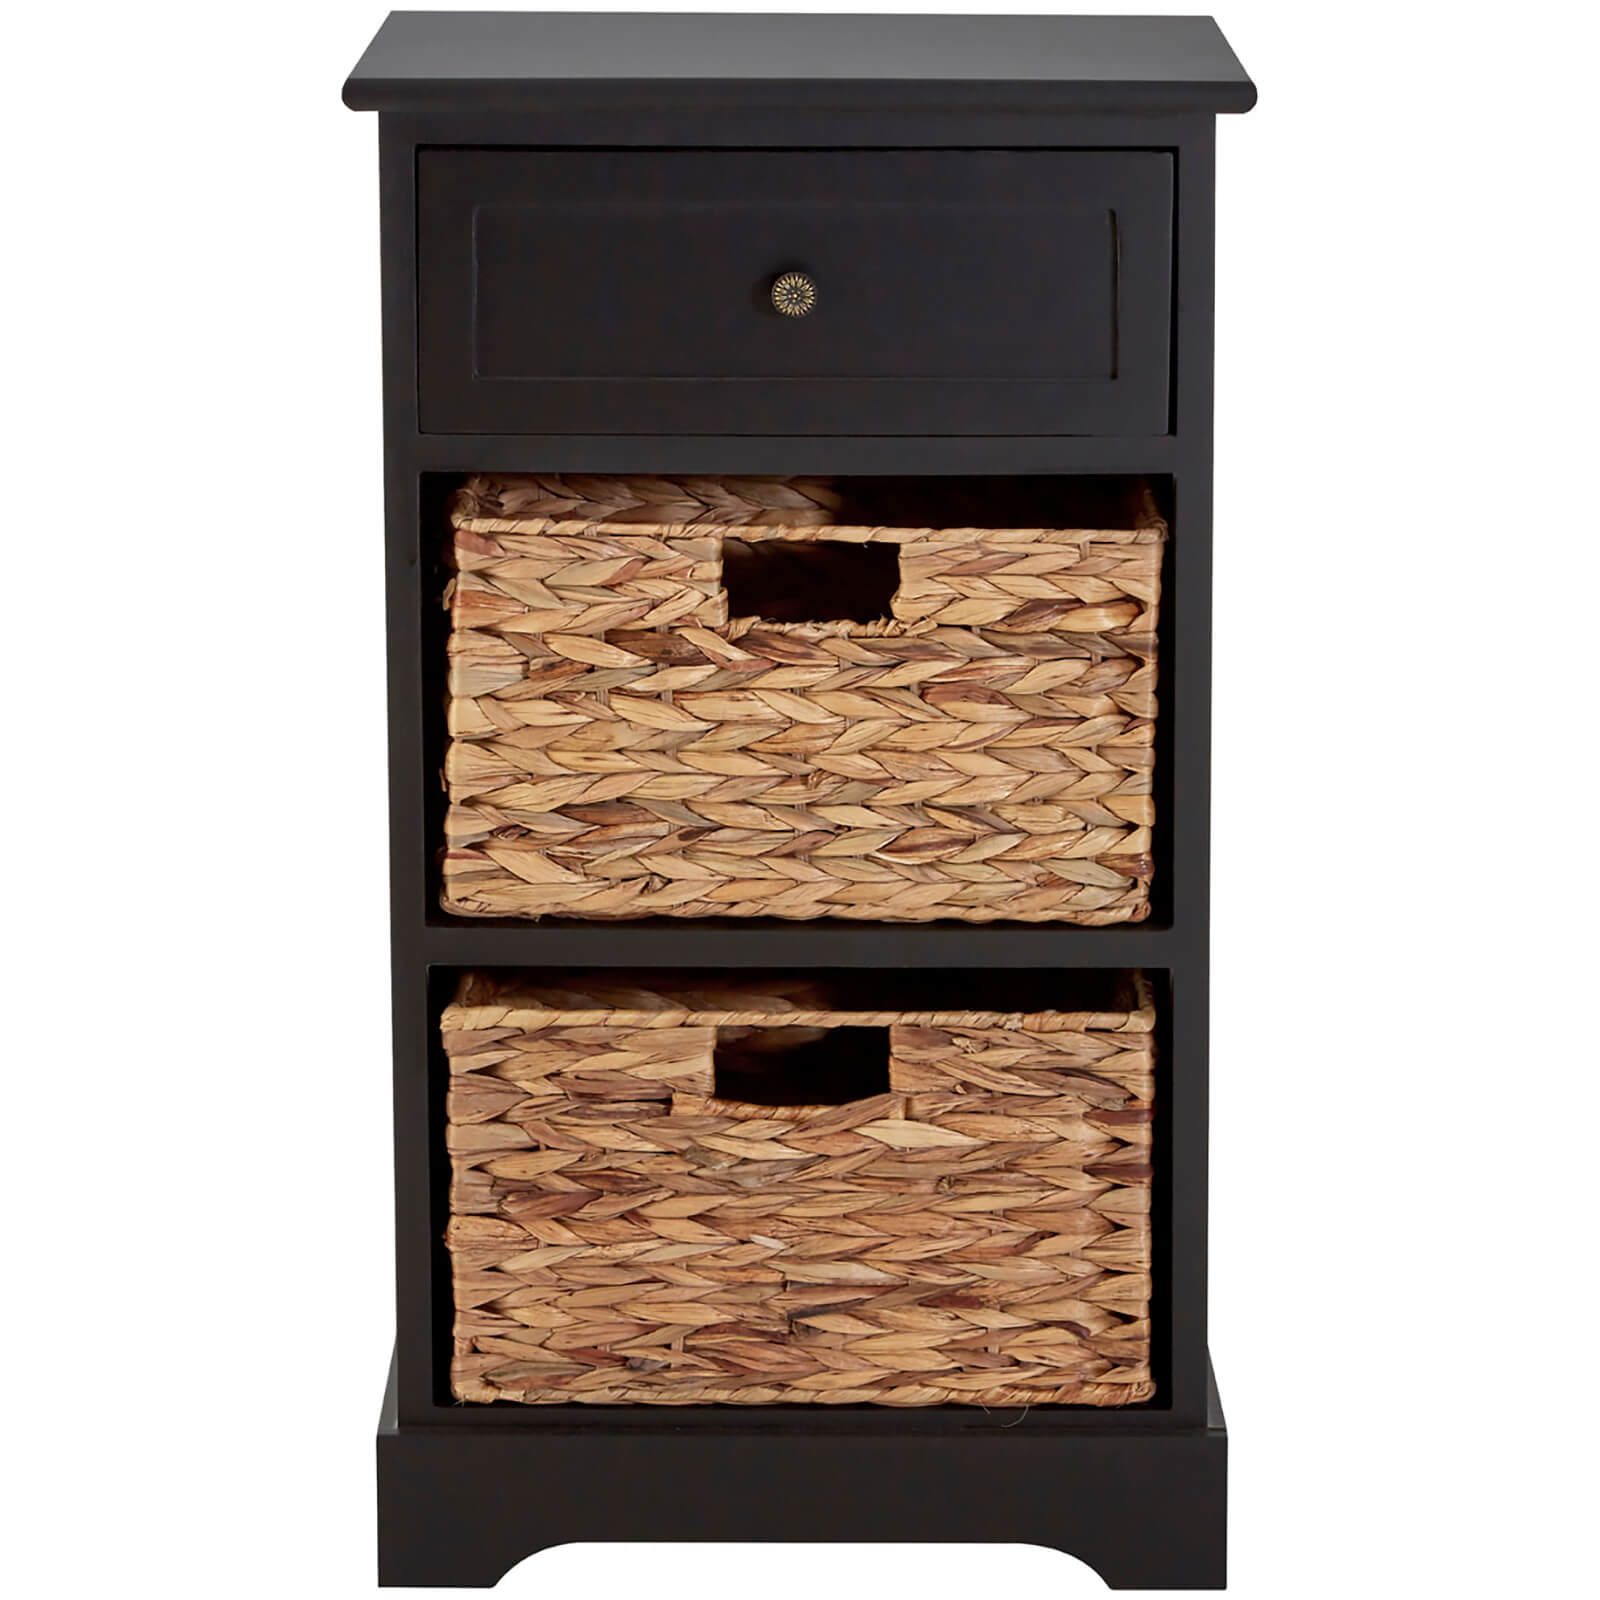 Vermont One Drawer Cabinet with Water Hyacinth Baskets - Black